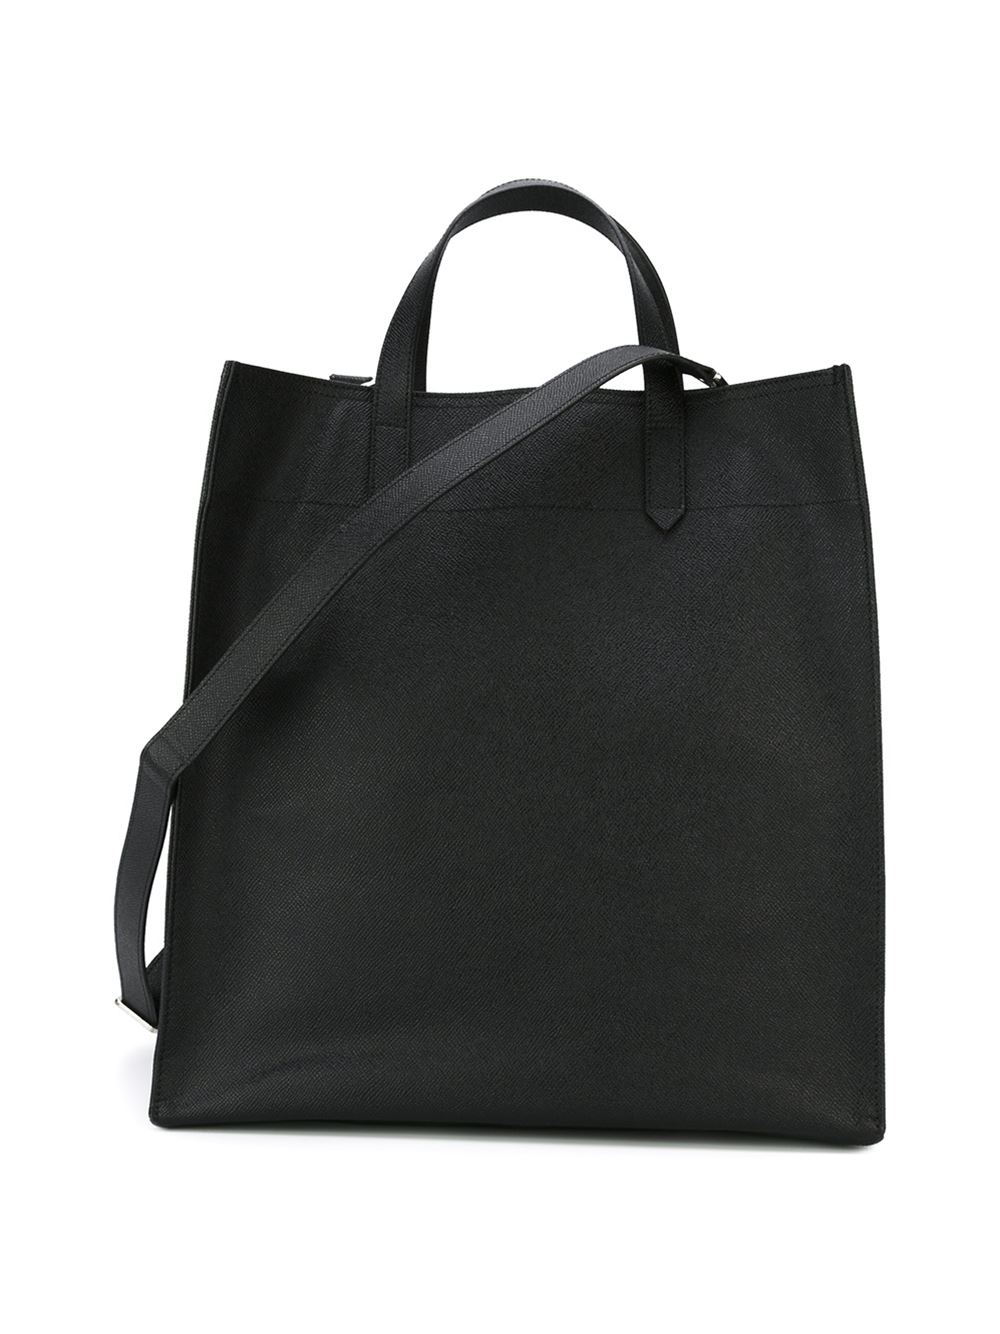 Givenchy Leather 'paris' Shopper Tote in Black